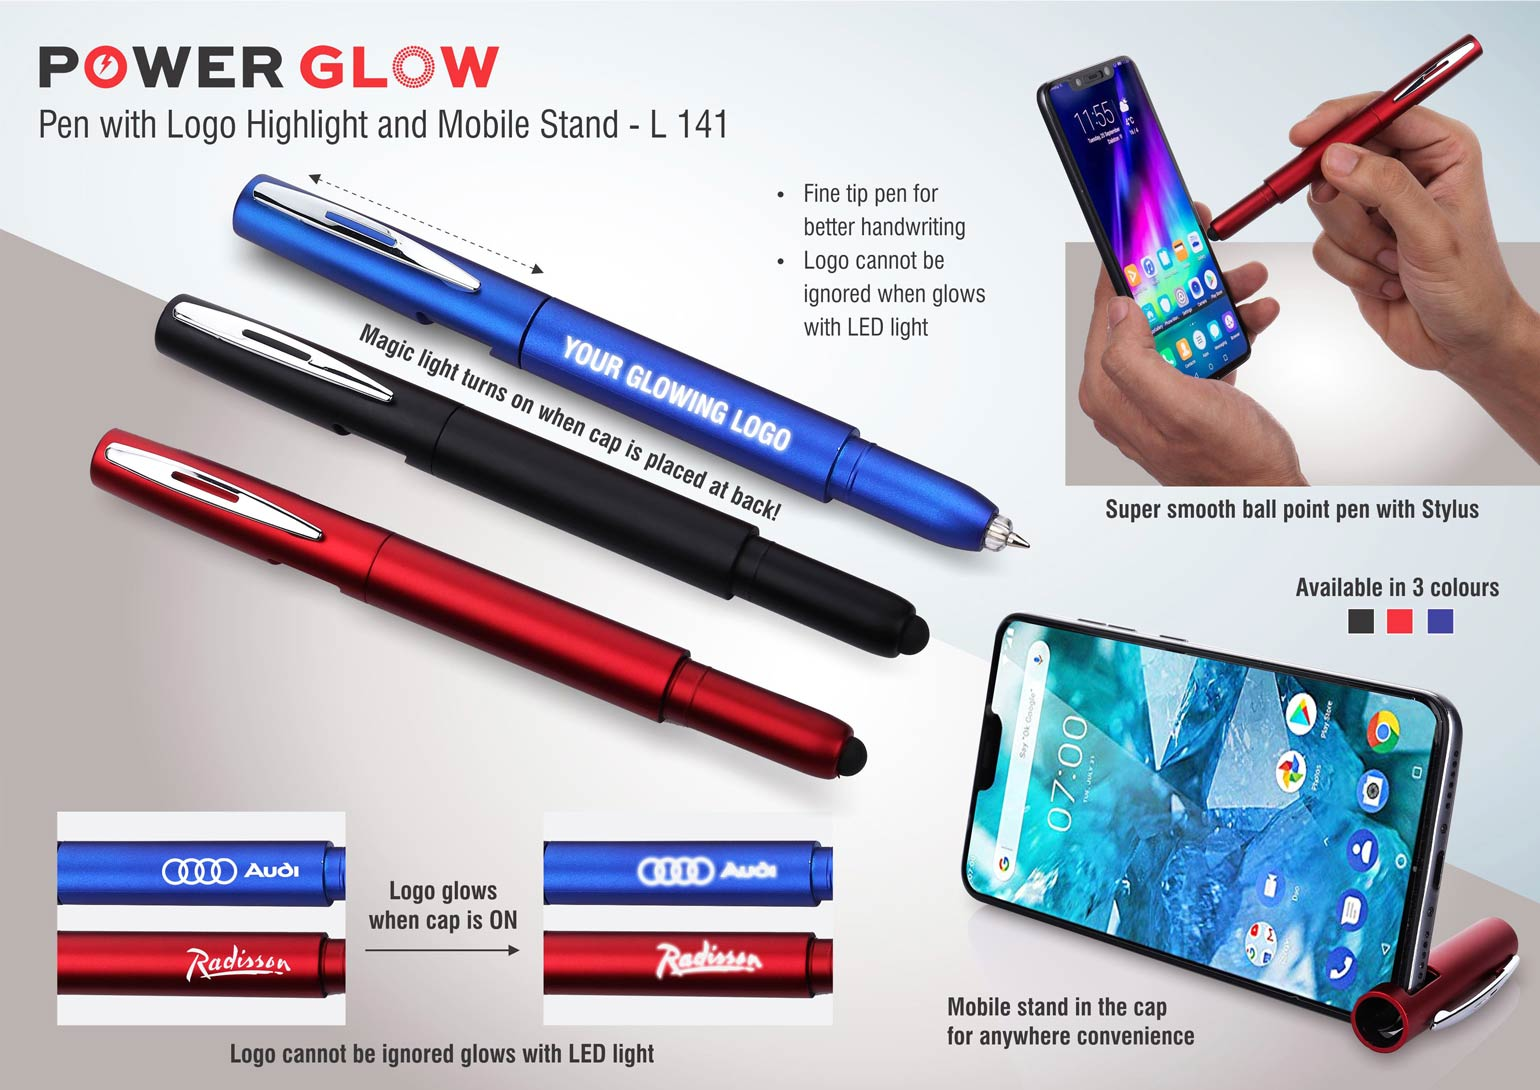 L141 - PowerGlow pen with logo highlight and mobile stand